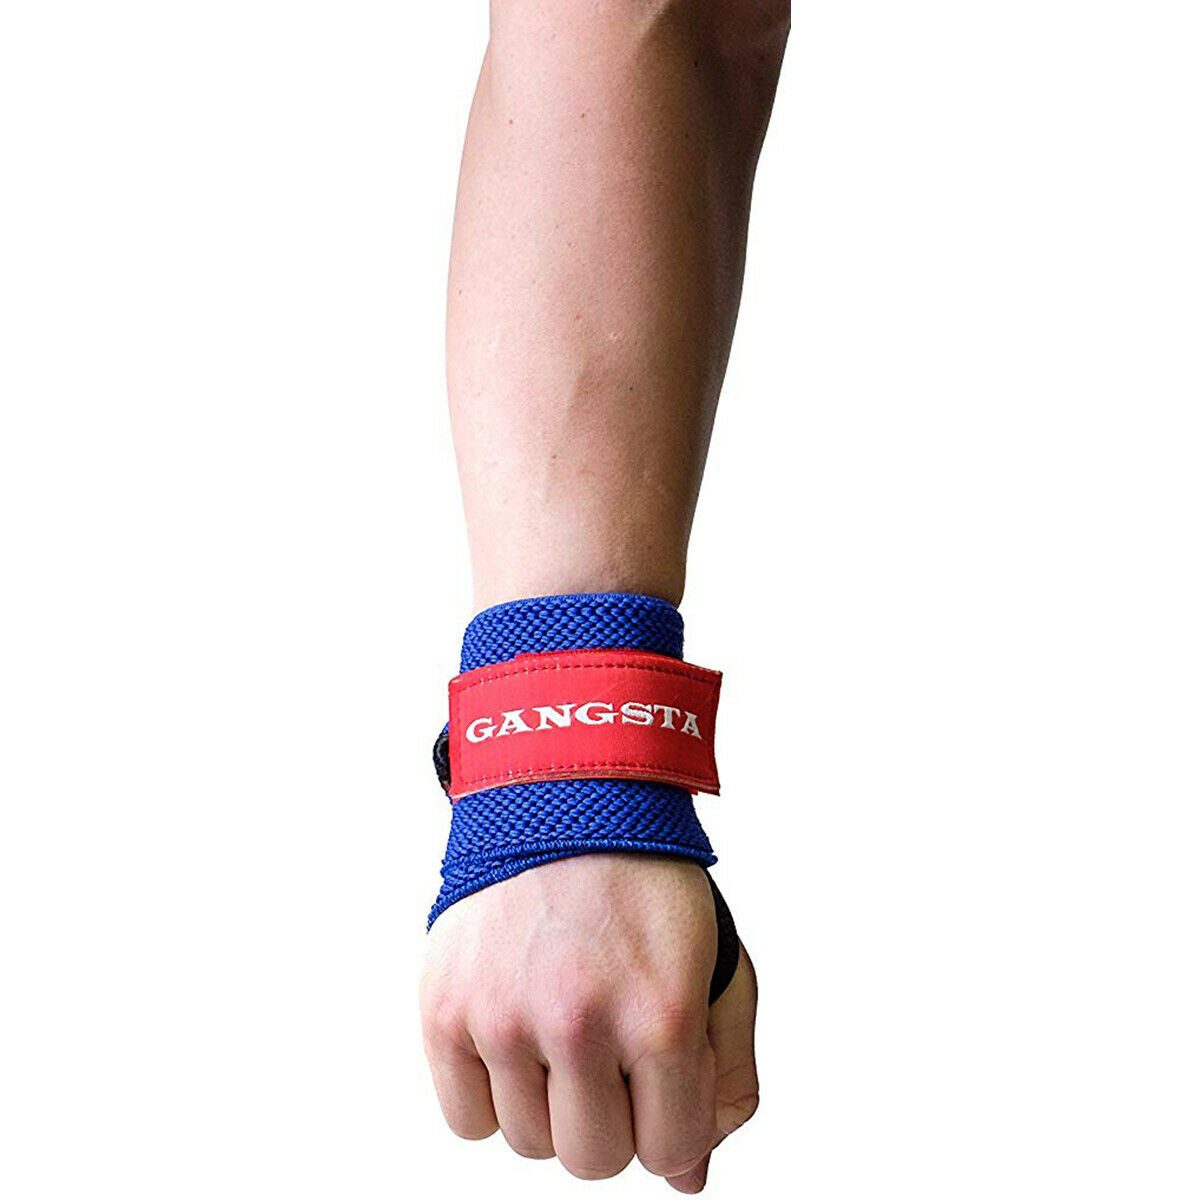 Sling Shot Gangsta Wraps by Mark Bell, IPF approved weight weight weight lifting wrist support 3bfbf9